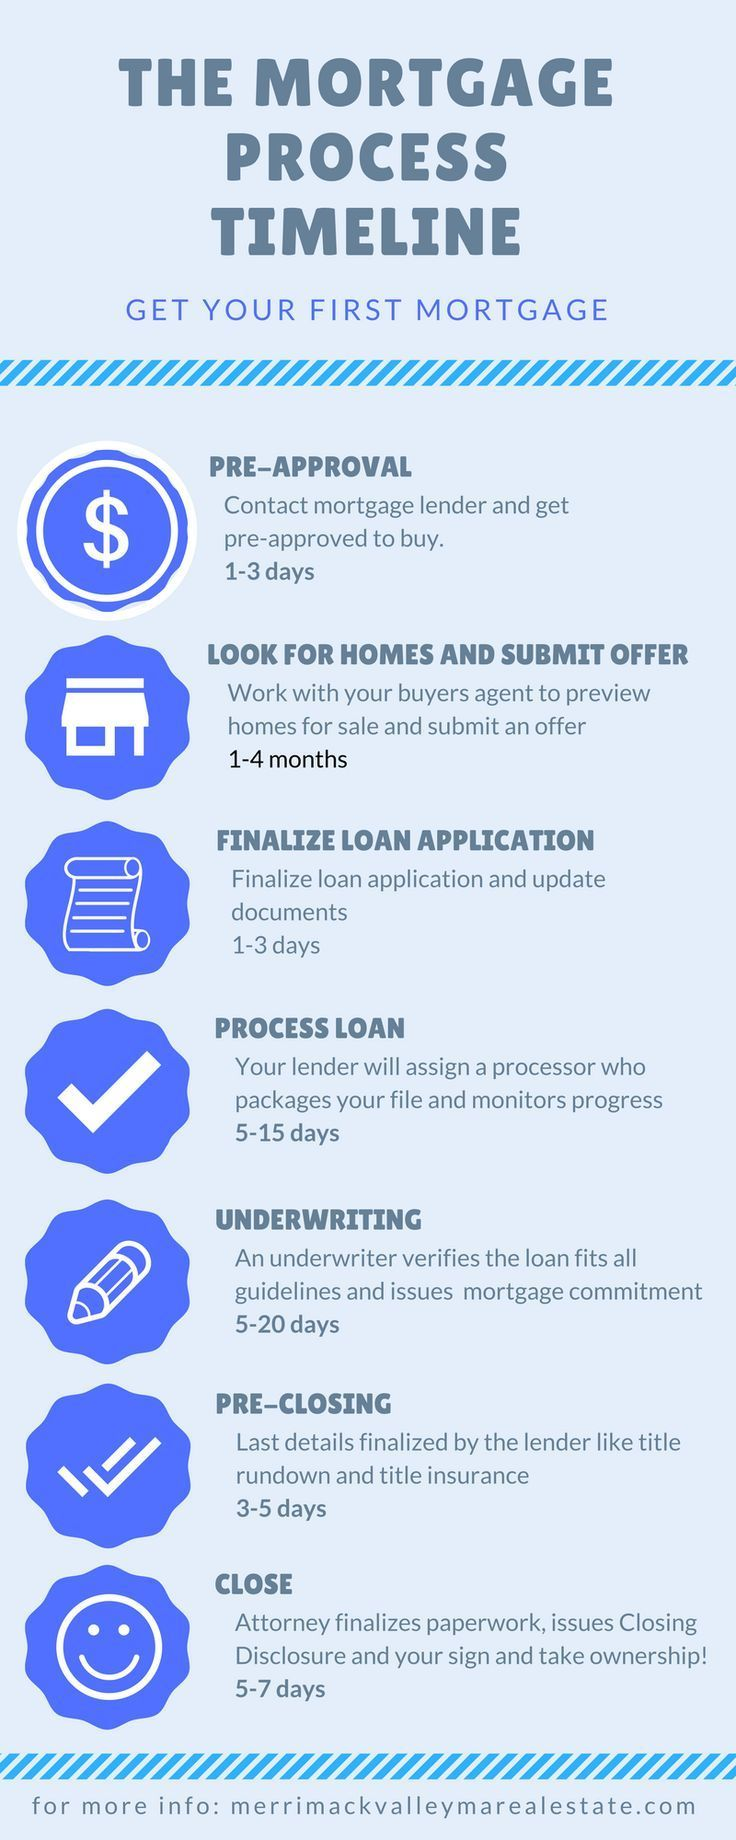 Timeline Of The Mortgage Process Getting Your First Mortgage Http Merrimackvalleymarealestate Co Buying Your First Home Home Buying Tips Home Buying Process